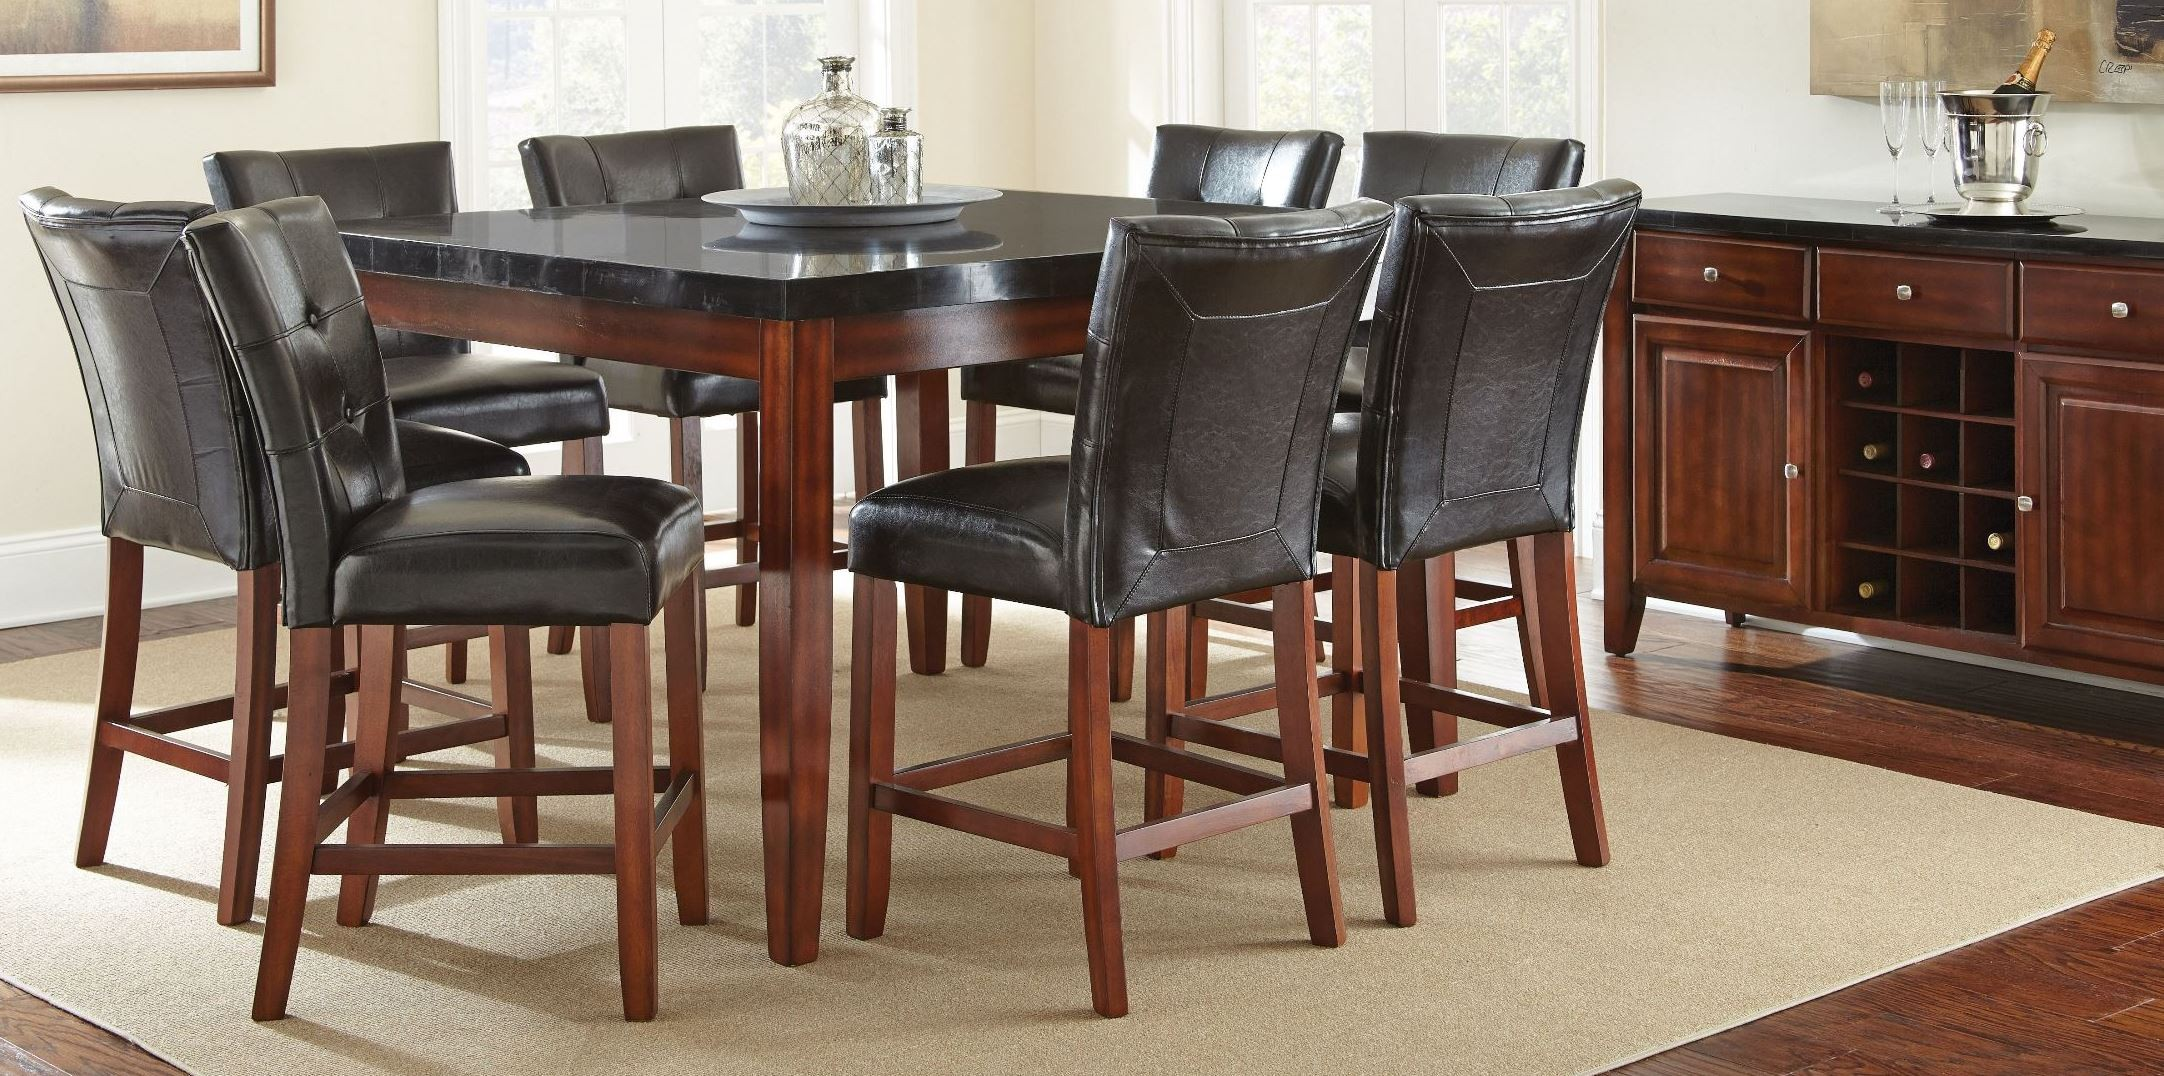 Granite Bello Square Counter Height Dining Room Set From Steve Silver MG5454